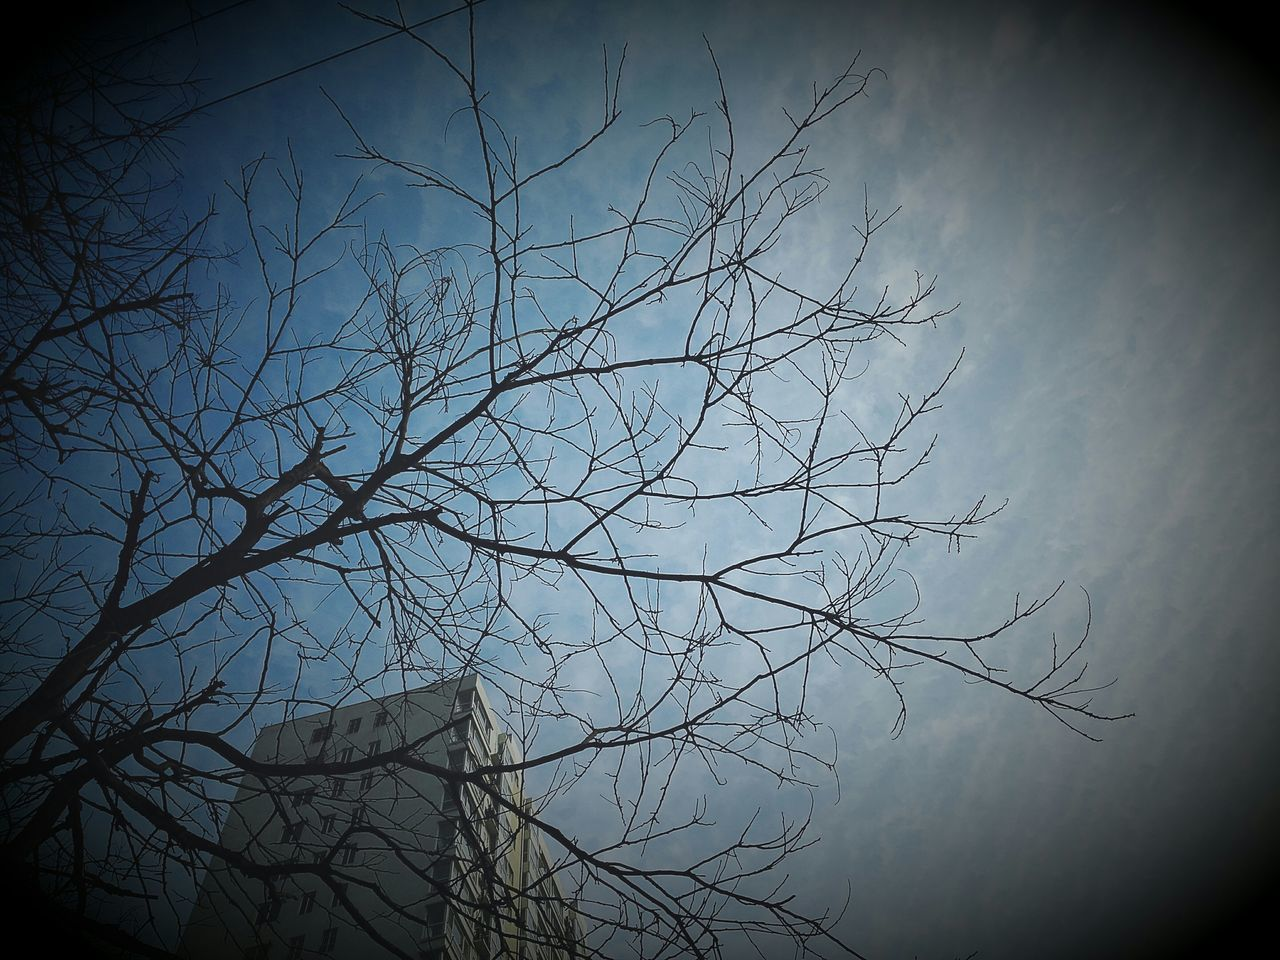 bare tree, tree, nature, sky, branch, vignette, no people, low angle view, tranquility, beauty in nature, outdoors, night